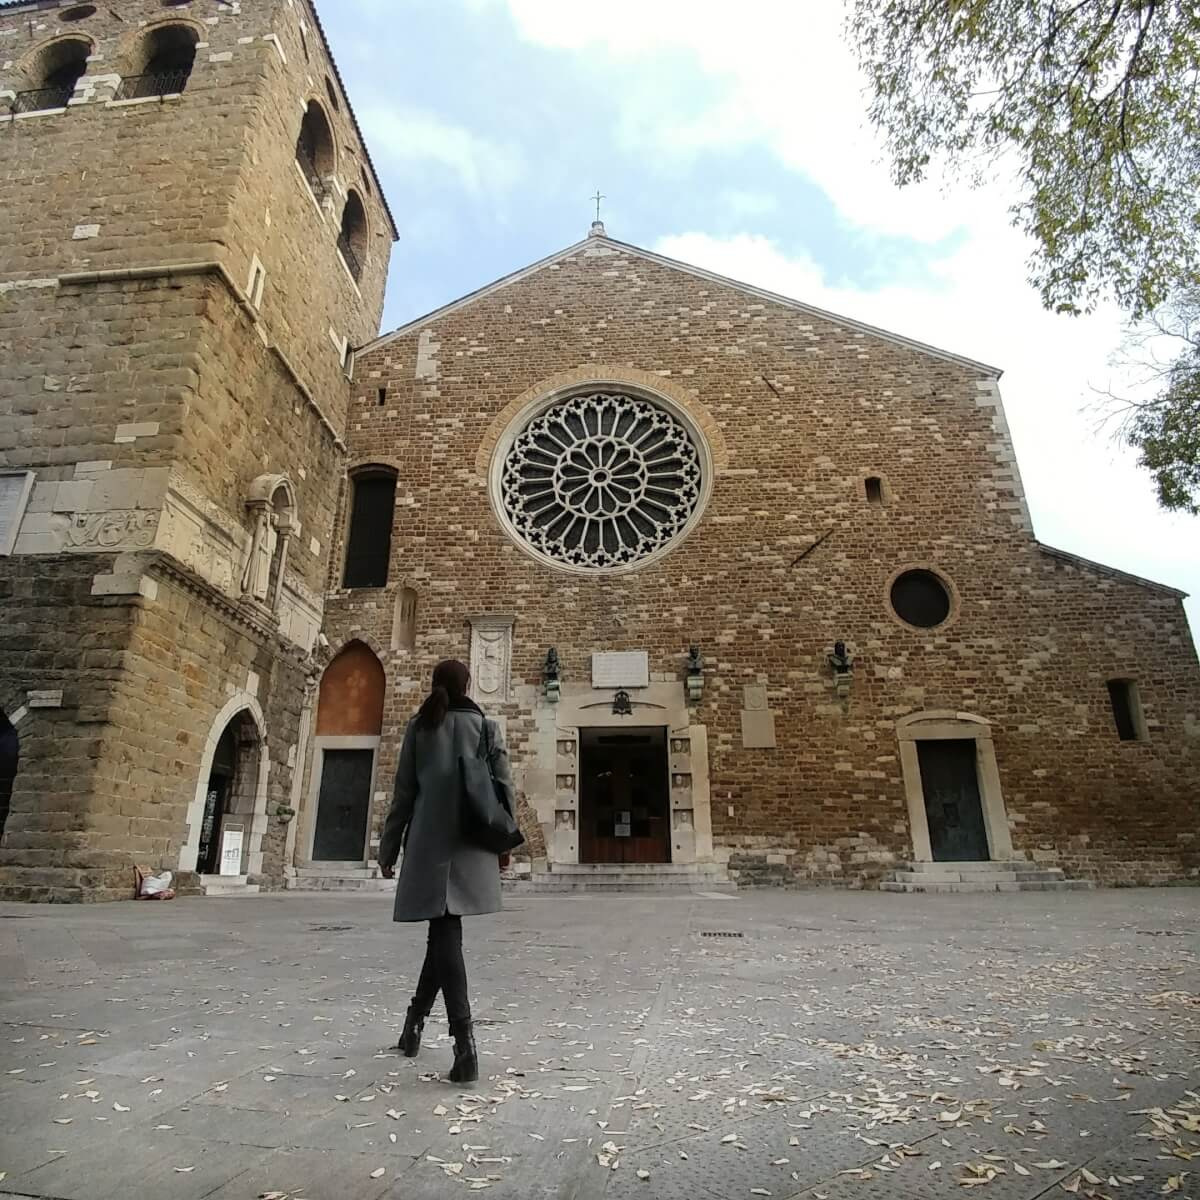 Cathedral of Trieste